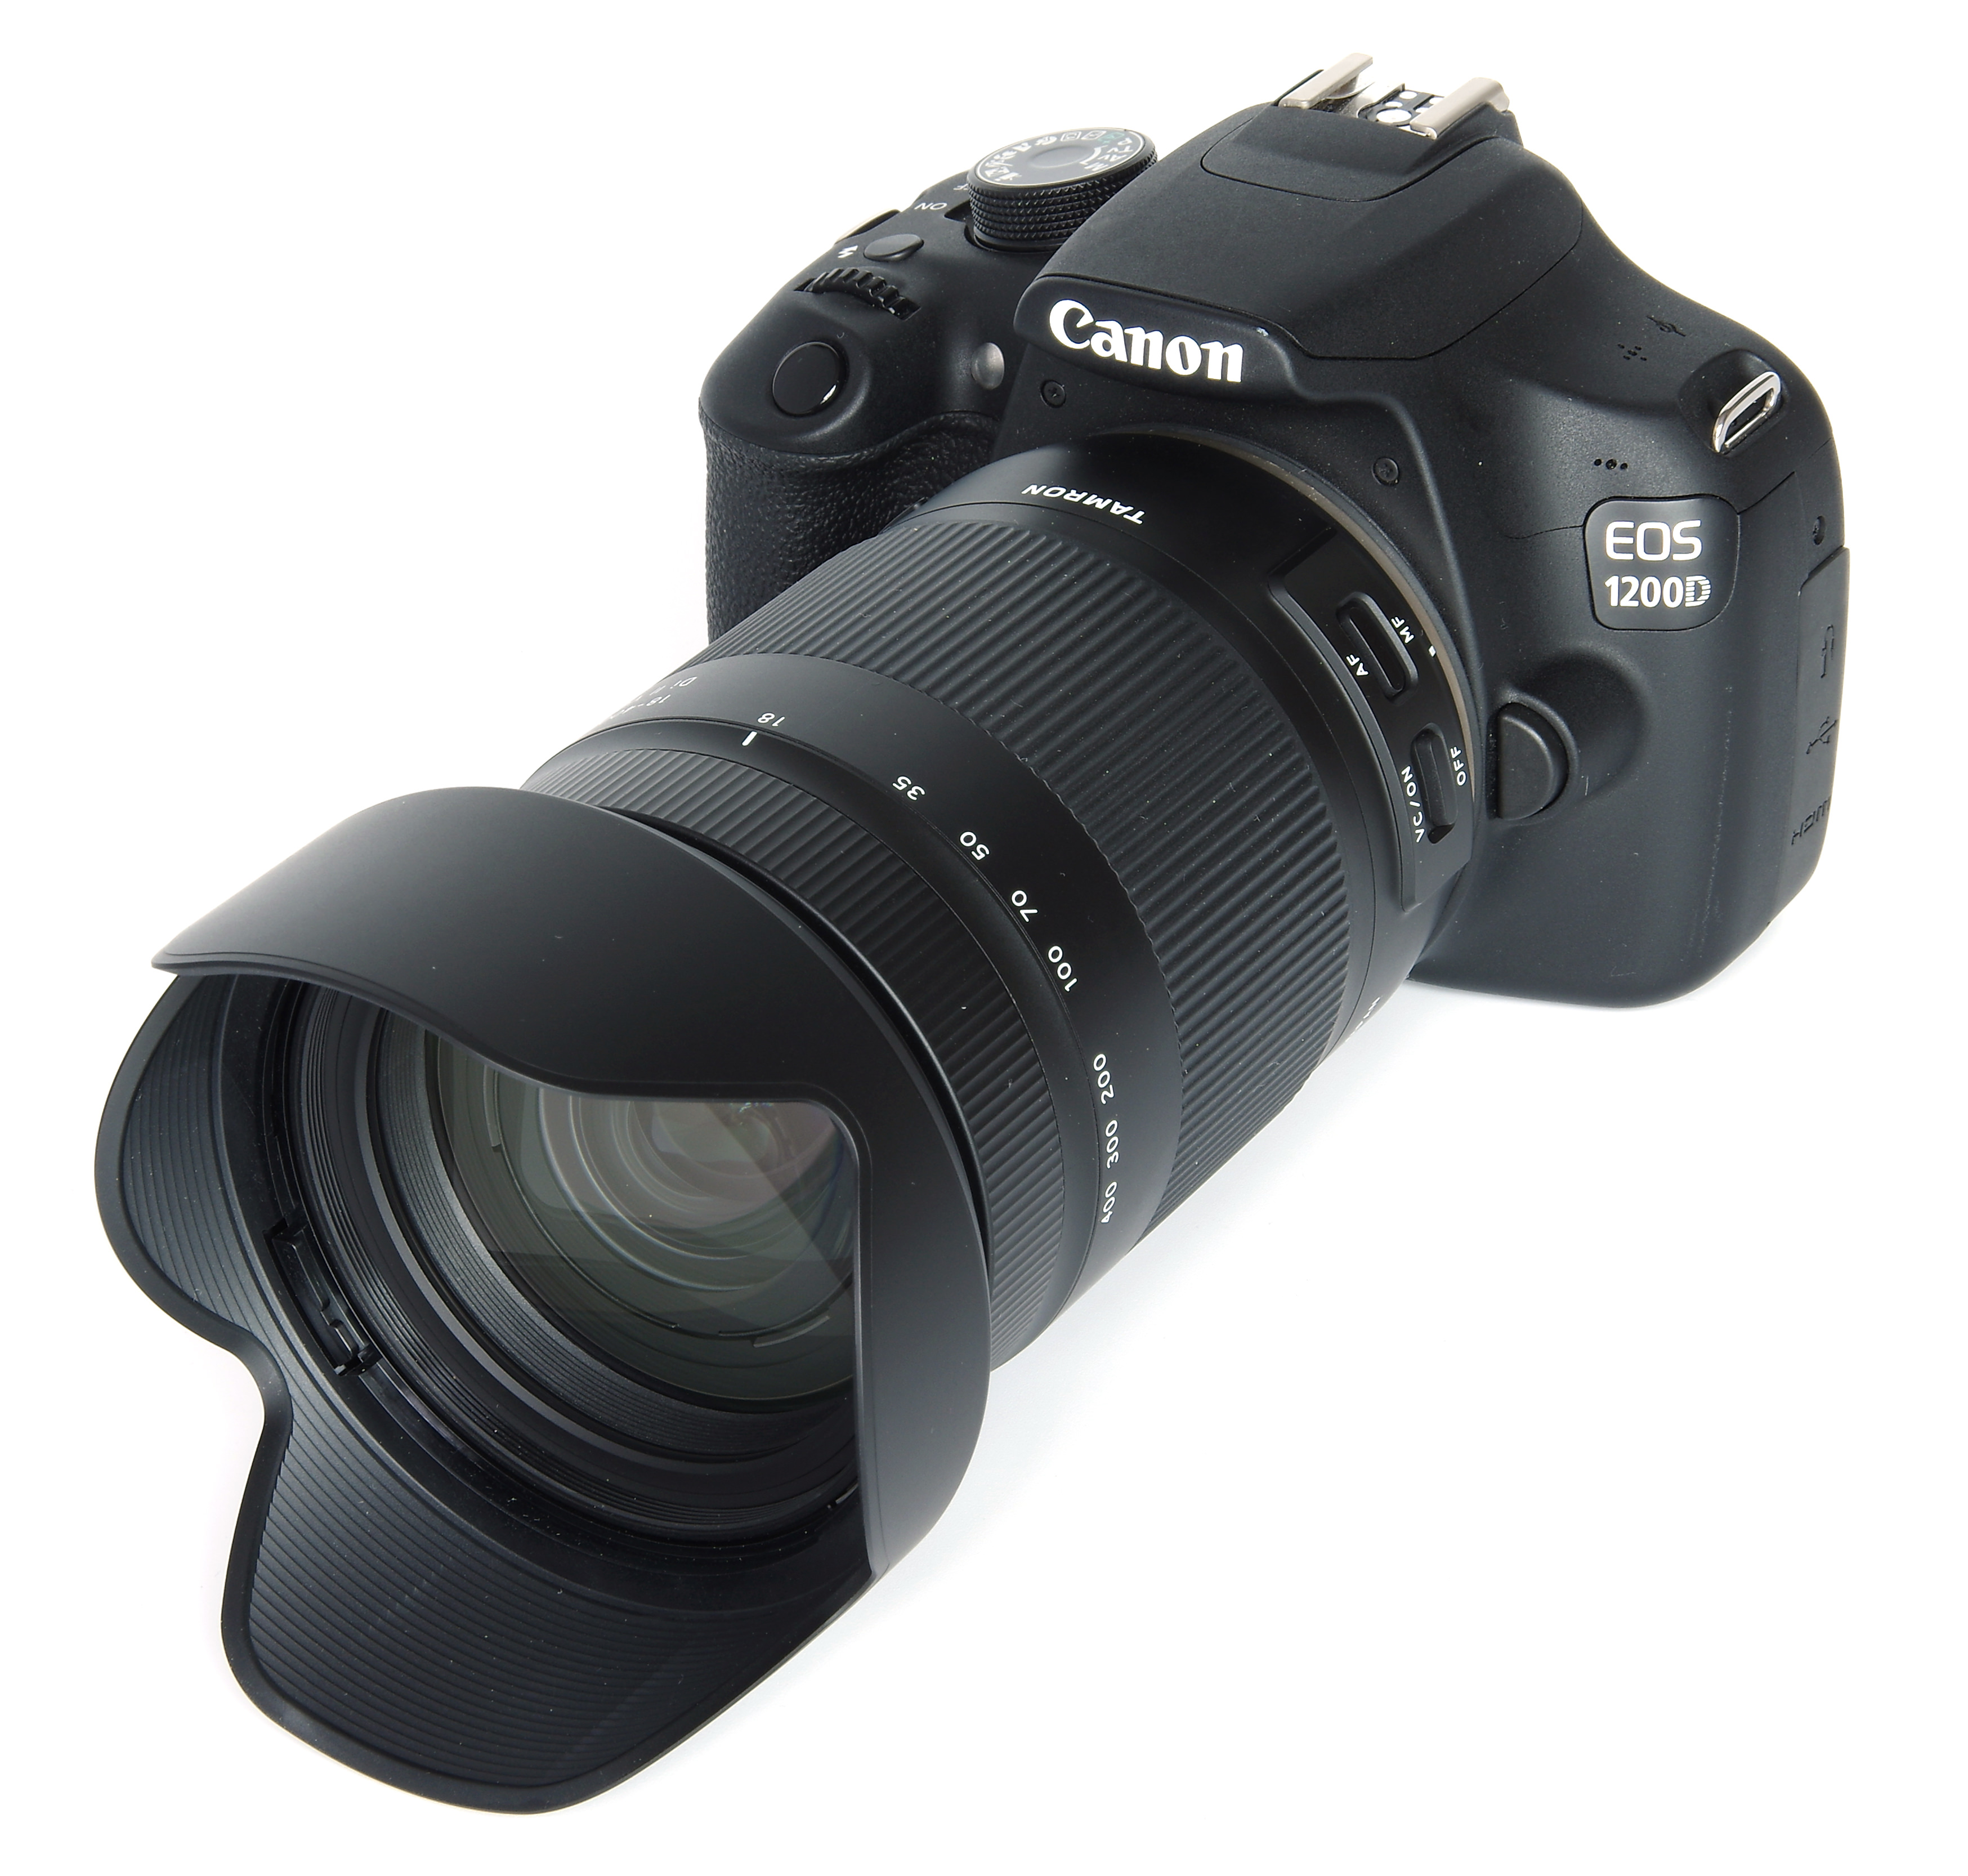 Tamron 18 400mm F 35 63 Di Ii Vc Hld Review Canon Eos 1200d Lensa 55mm Kamera Kit On With Hood